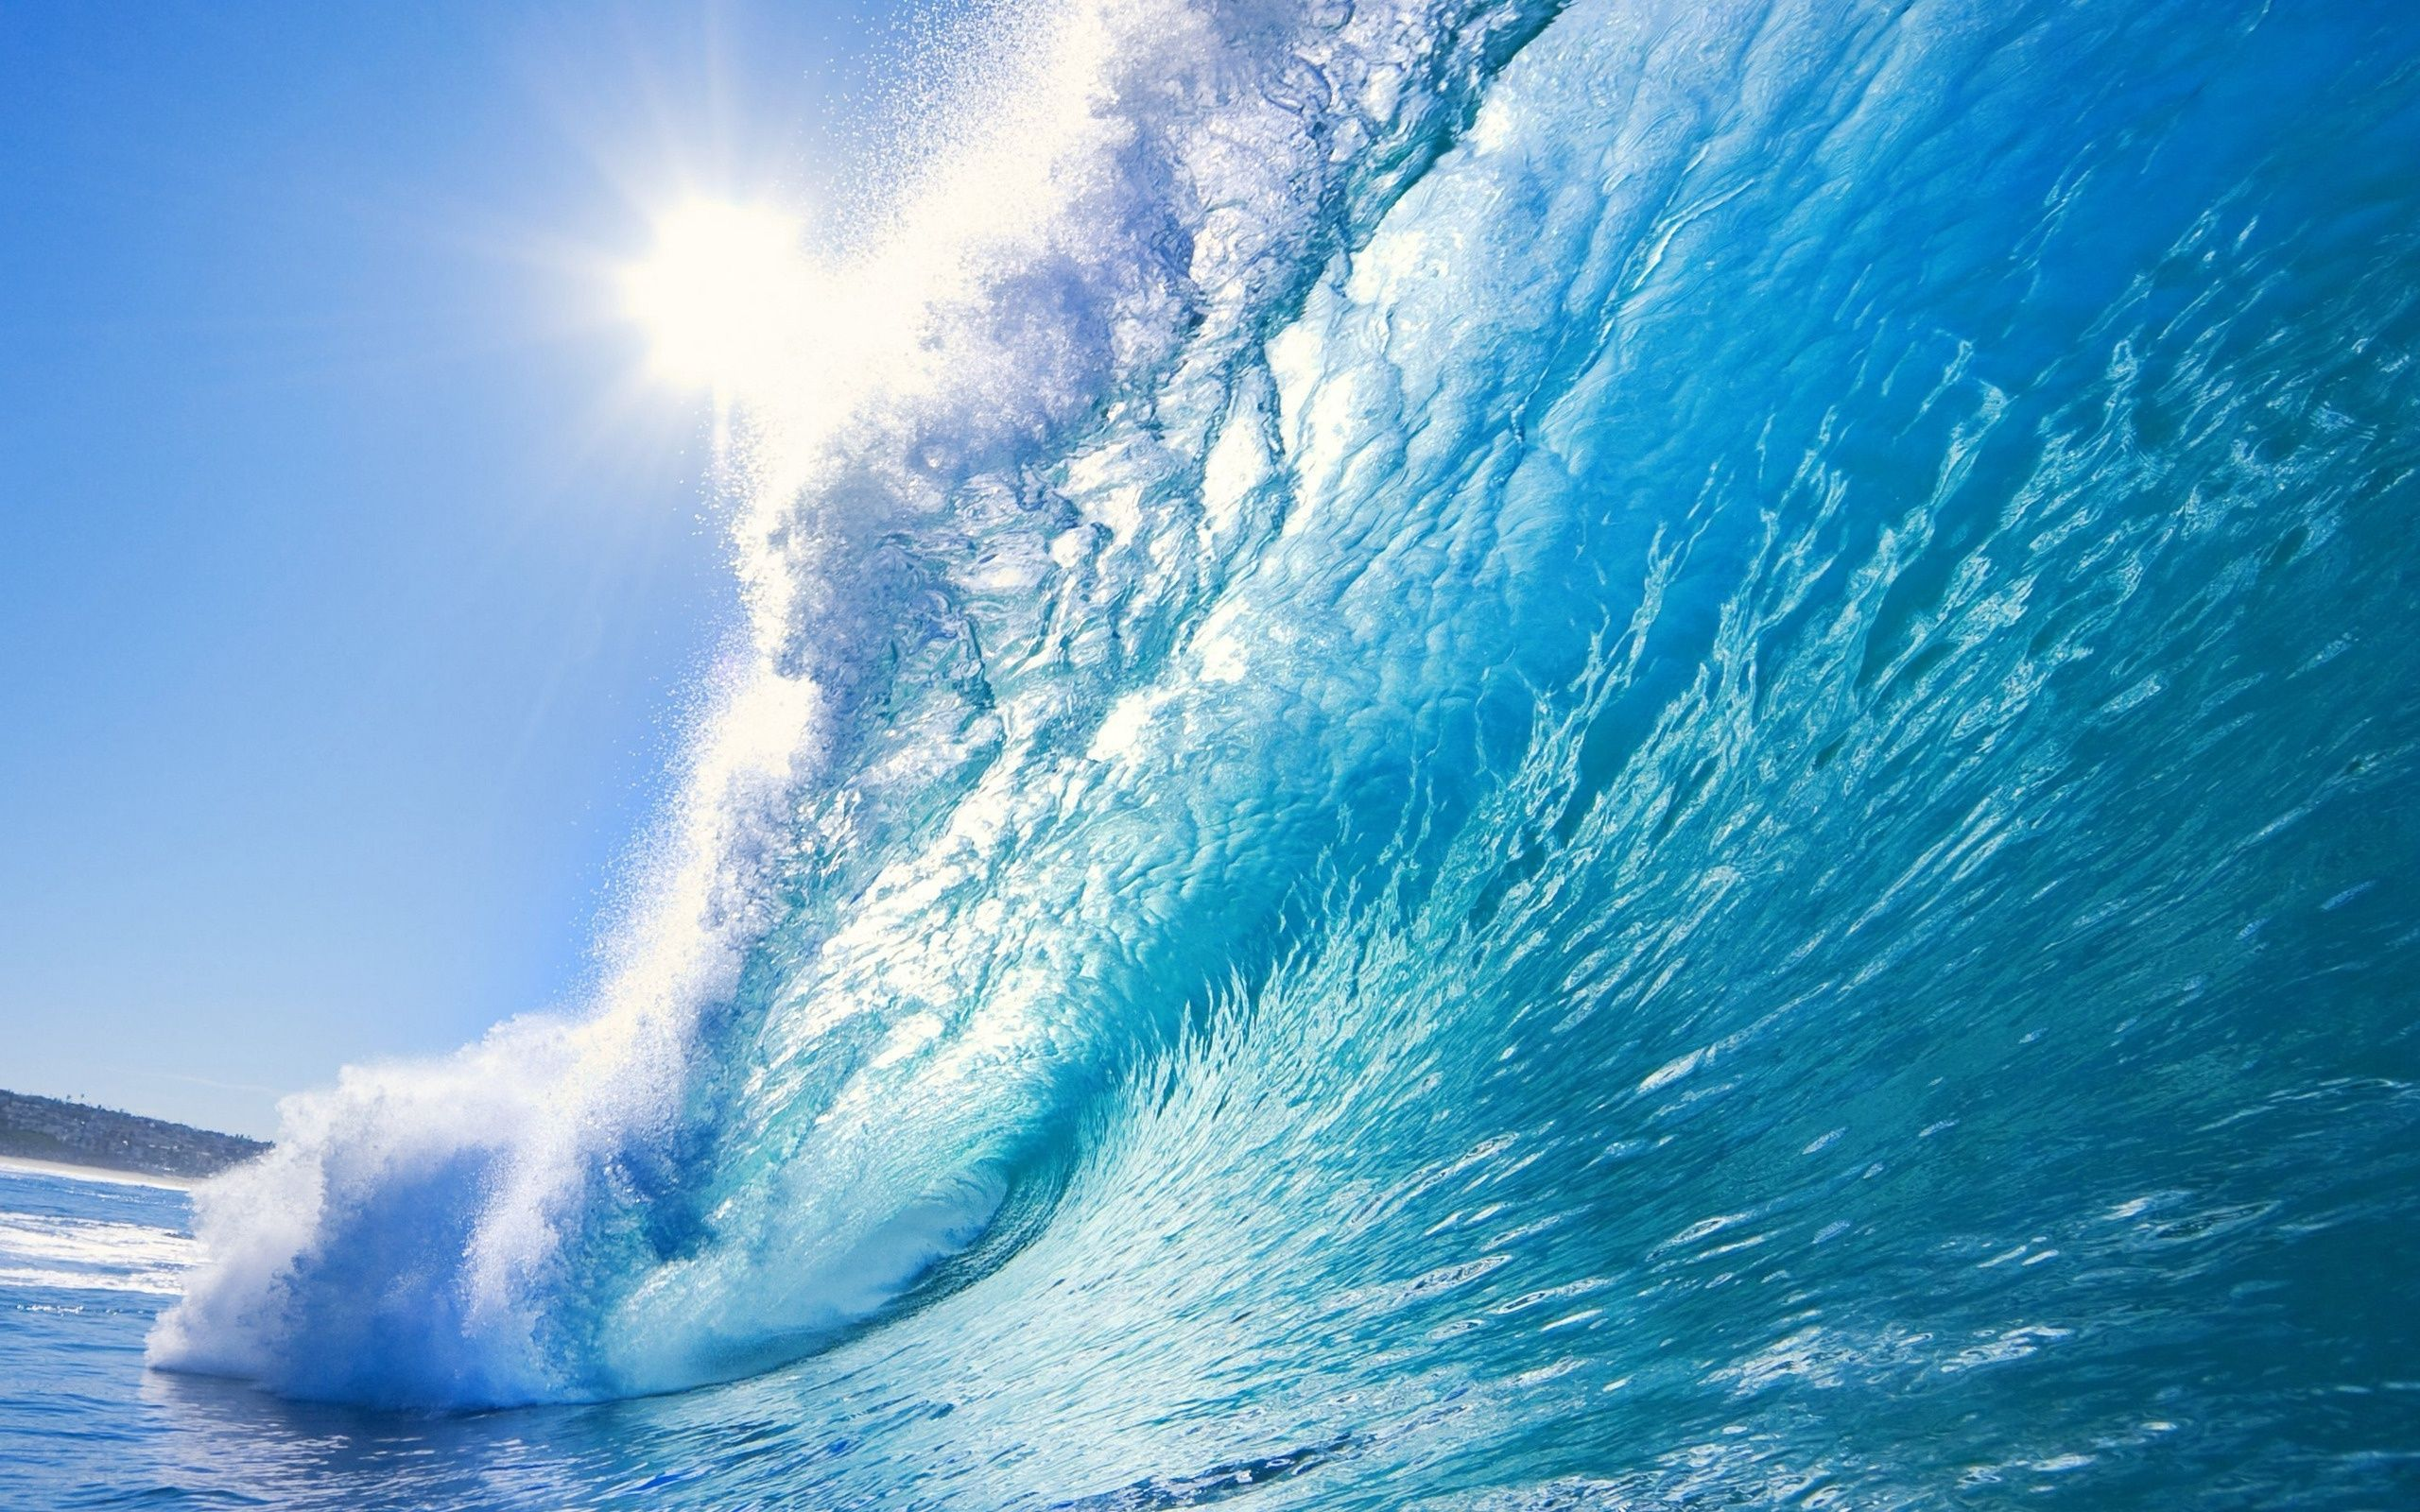 Ocean Waves Wallpapers Top Free Ocean Waves Backgrounds Wallpaperaccess